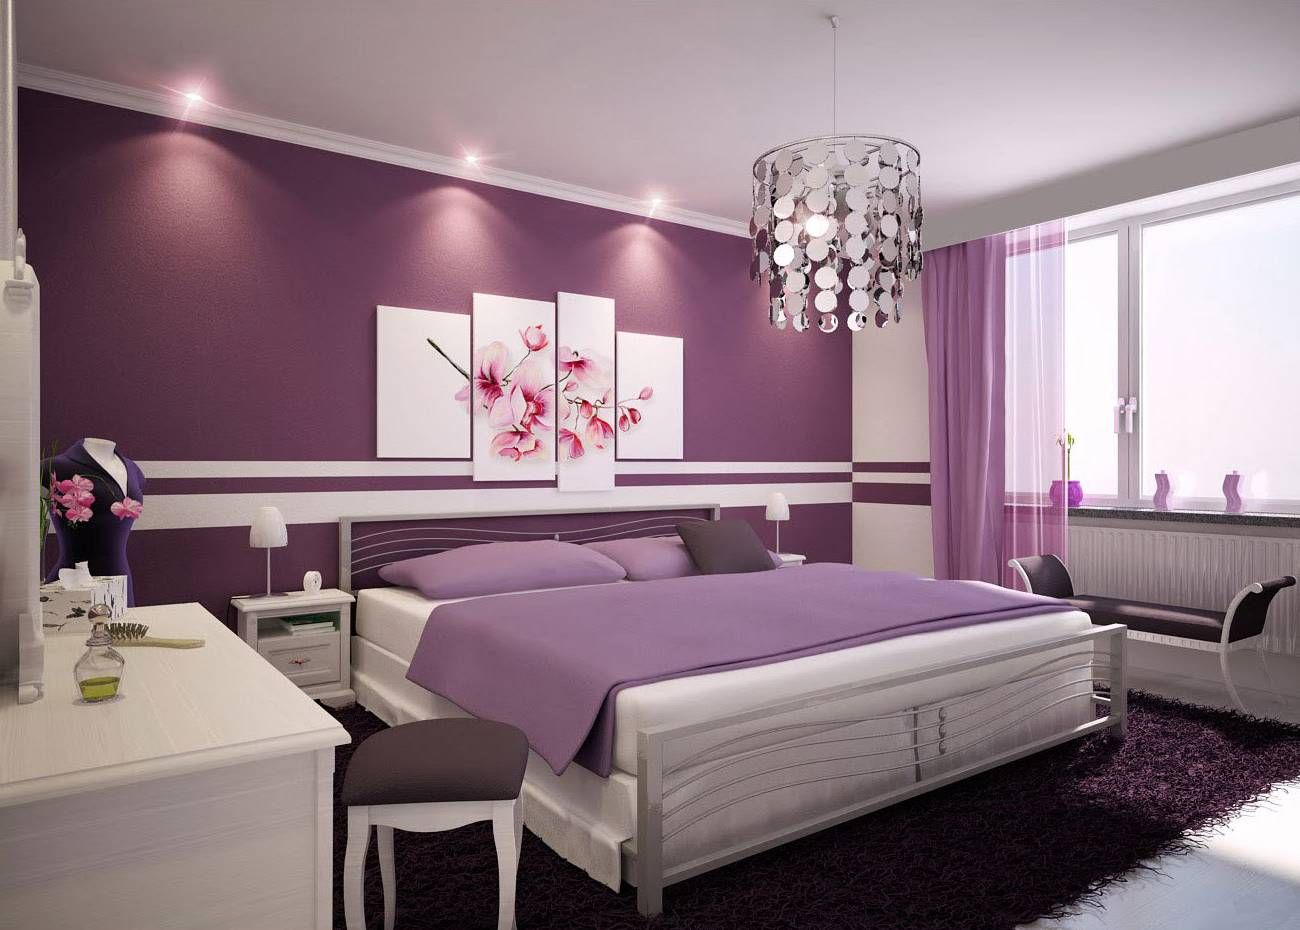 Design Bedroom Games Pleasing Playfull Yet Cozy Bedroom…  Design For Your Bedroom Design Your 2018